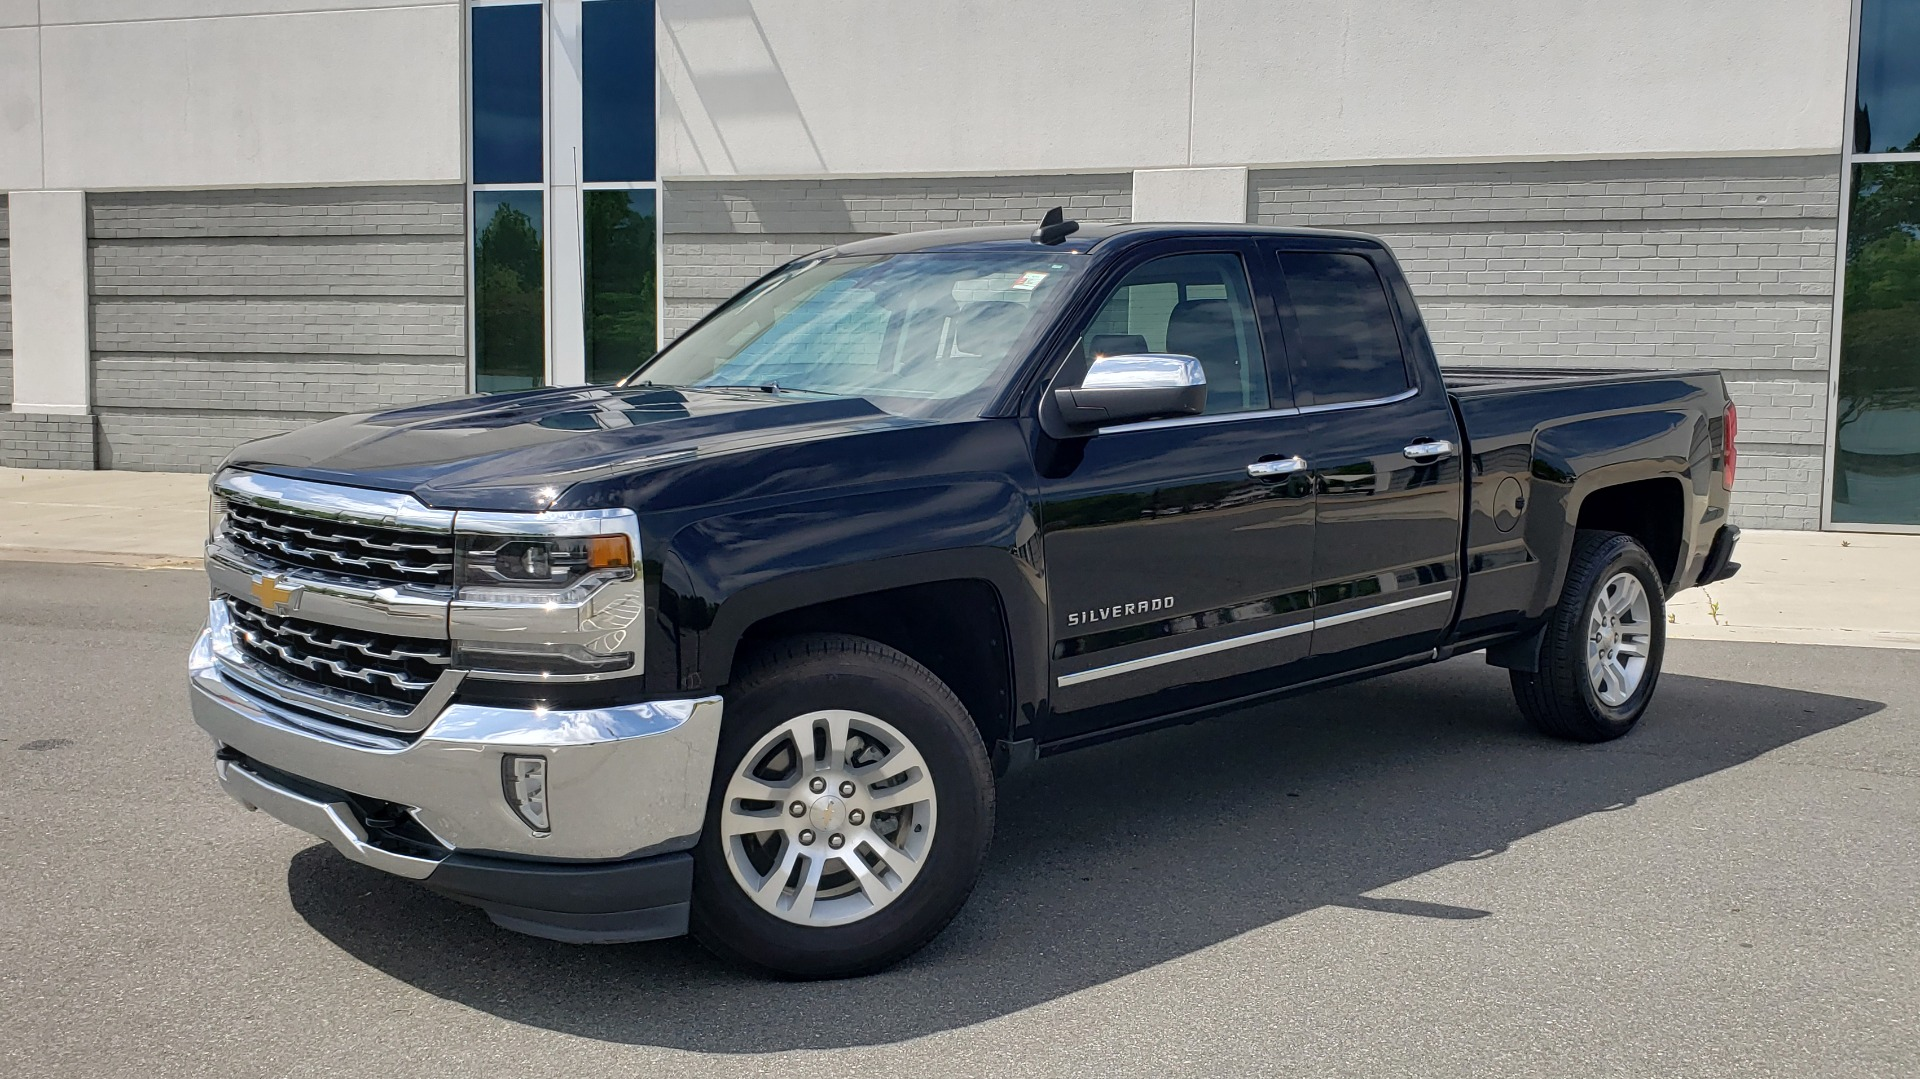 Used 2018 Chevrolet SILVERADO 1500 LTZ 1LZ / 5.3L V8 / 2WD / 6-SPD AUTO / DOUBLECAB / REARVIEW for sale $28,995 at Formula Imports in Charlotte NC 28227 1